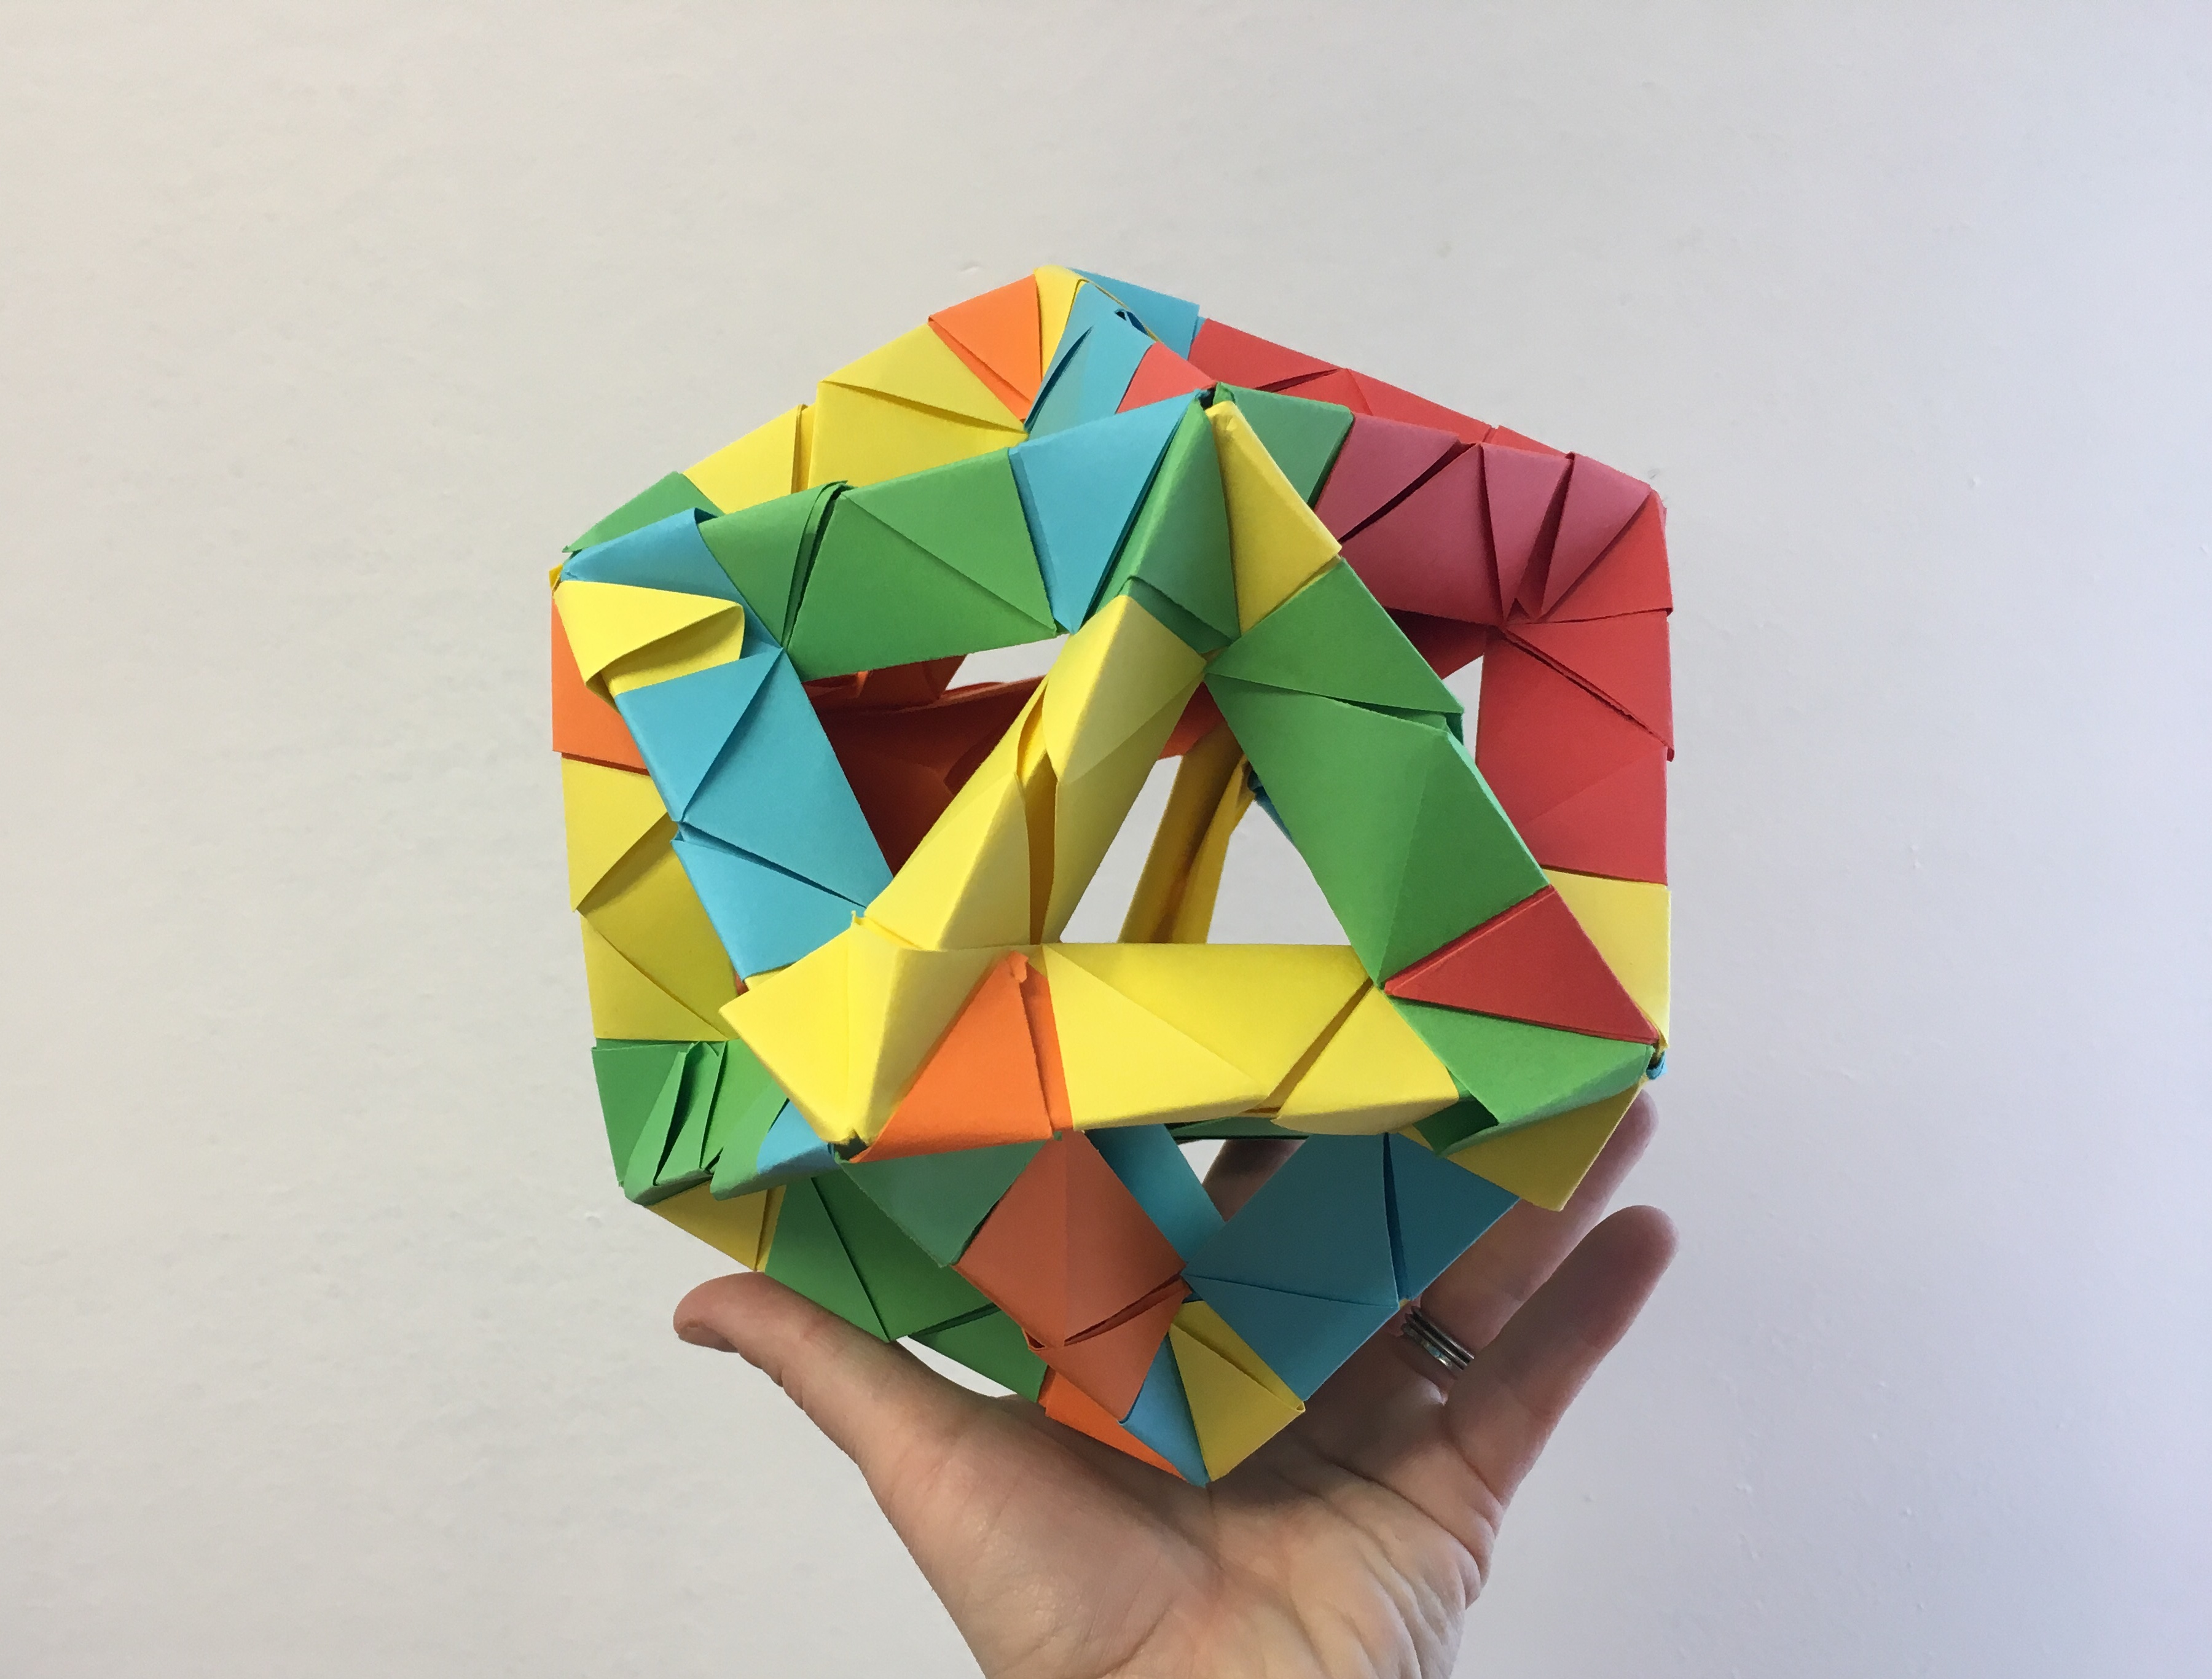 In This Family Friendly Workshop Learn How To Use Traditional Paper Folding Techniques Create Intricate Icosahedra And Other Geometric Structures